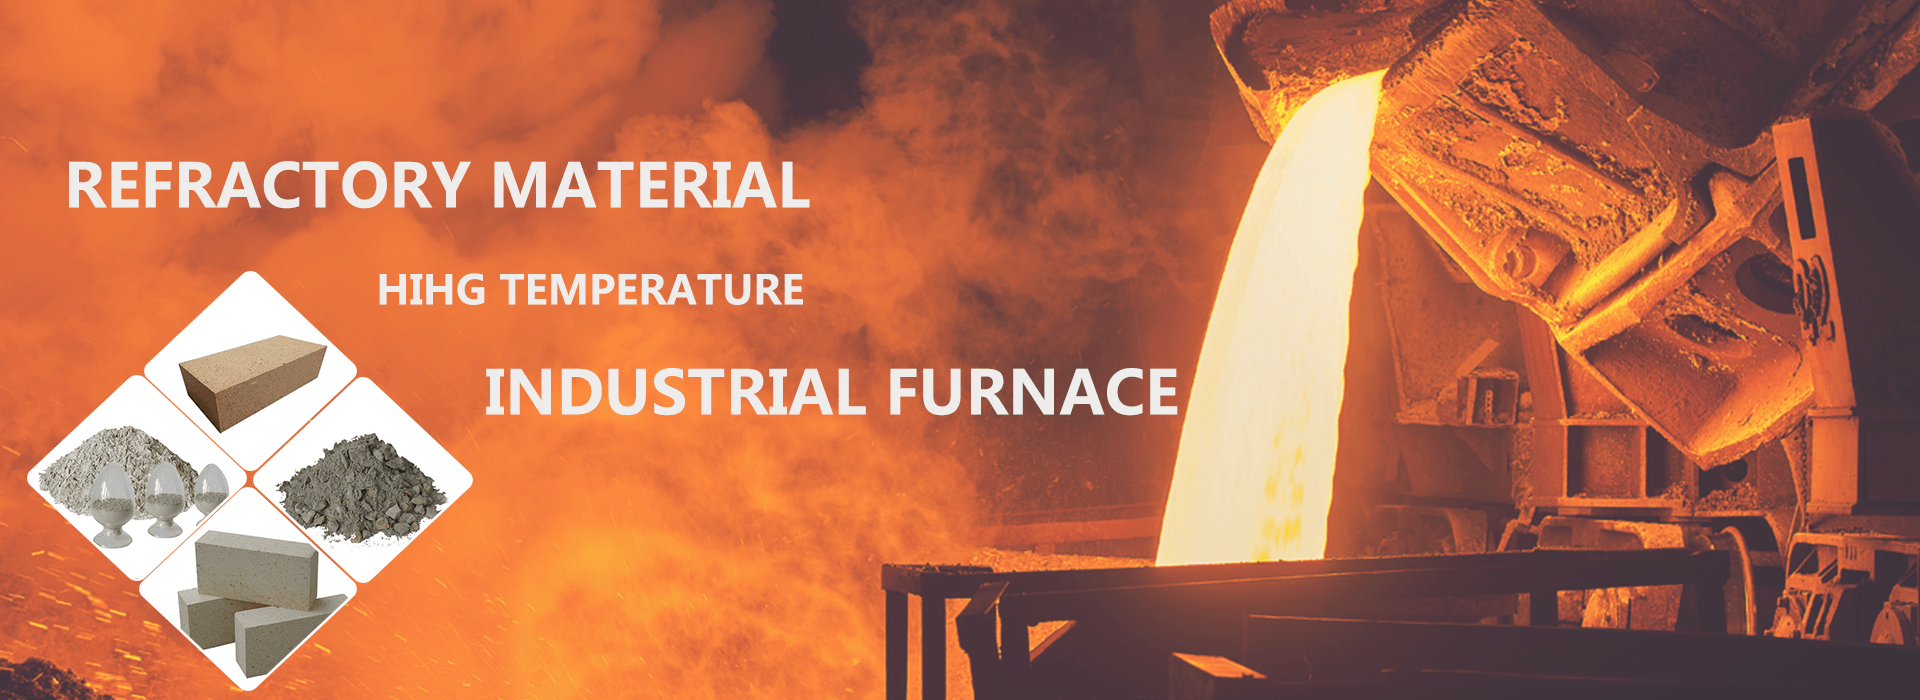 Refractory material factory